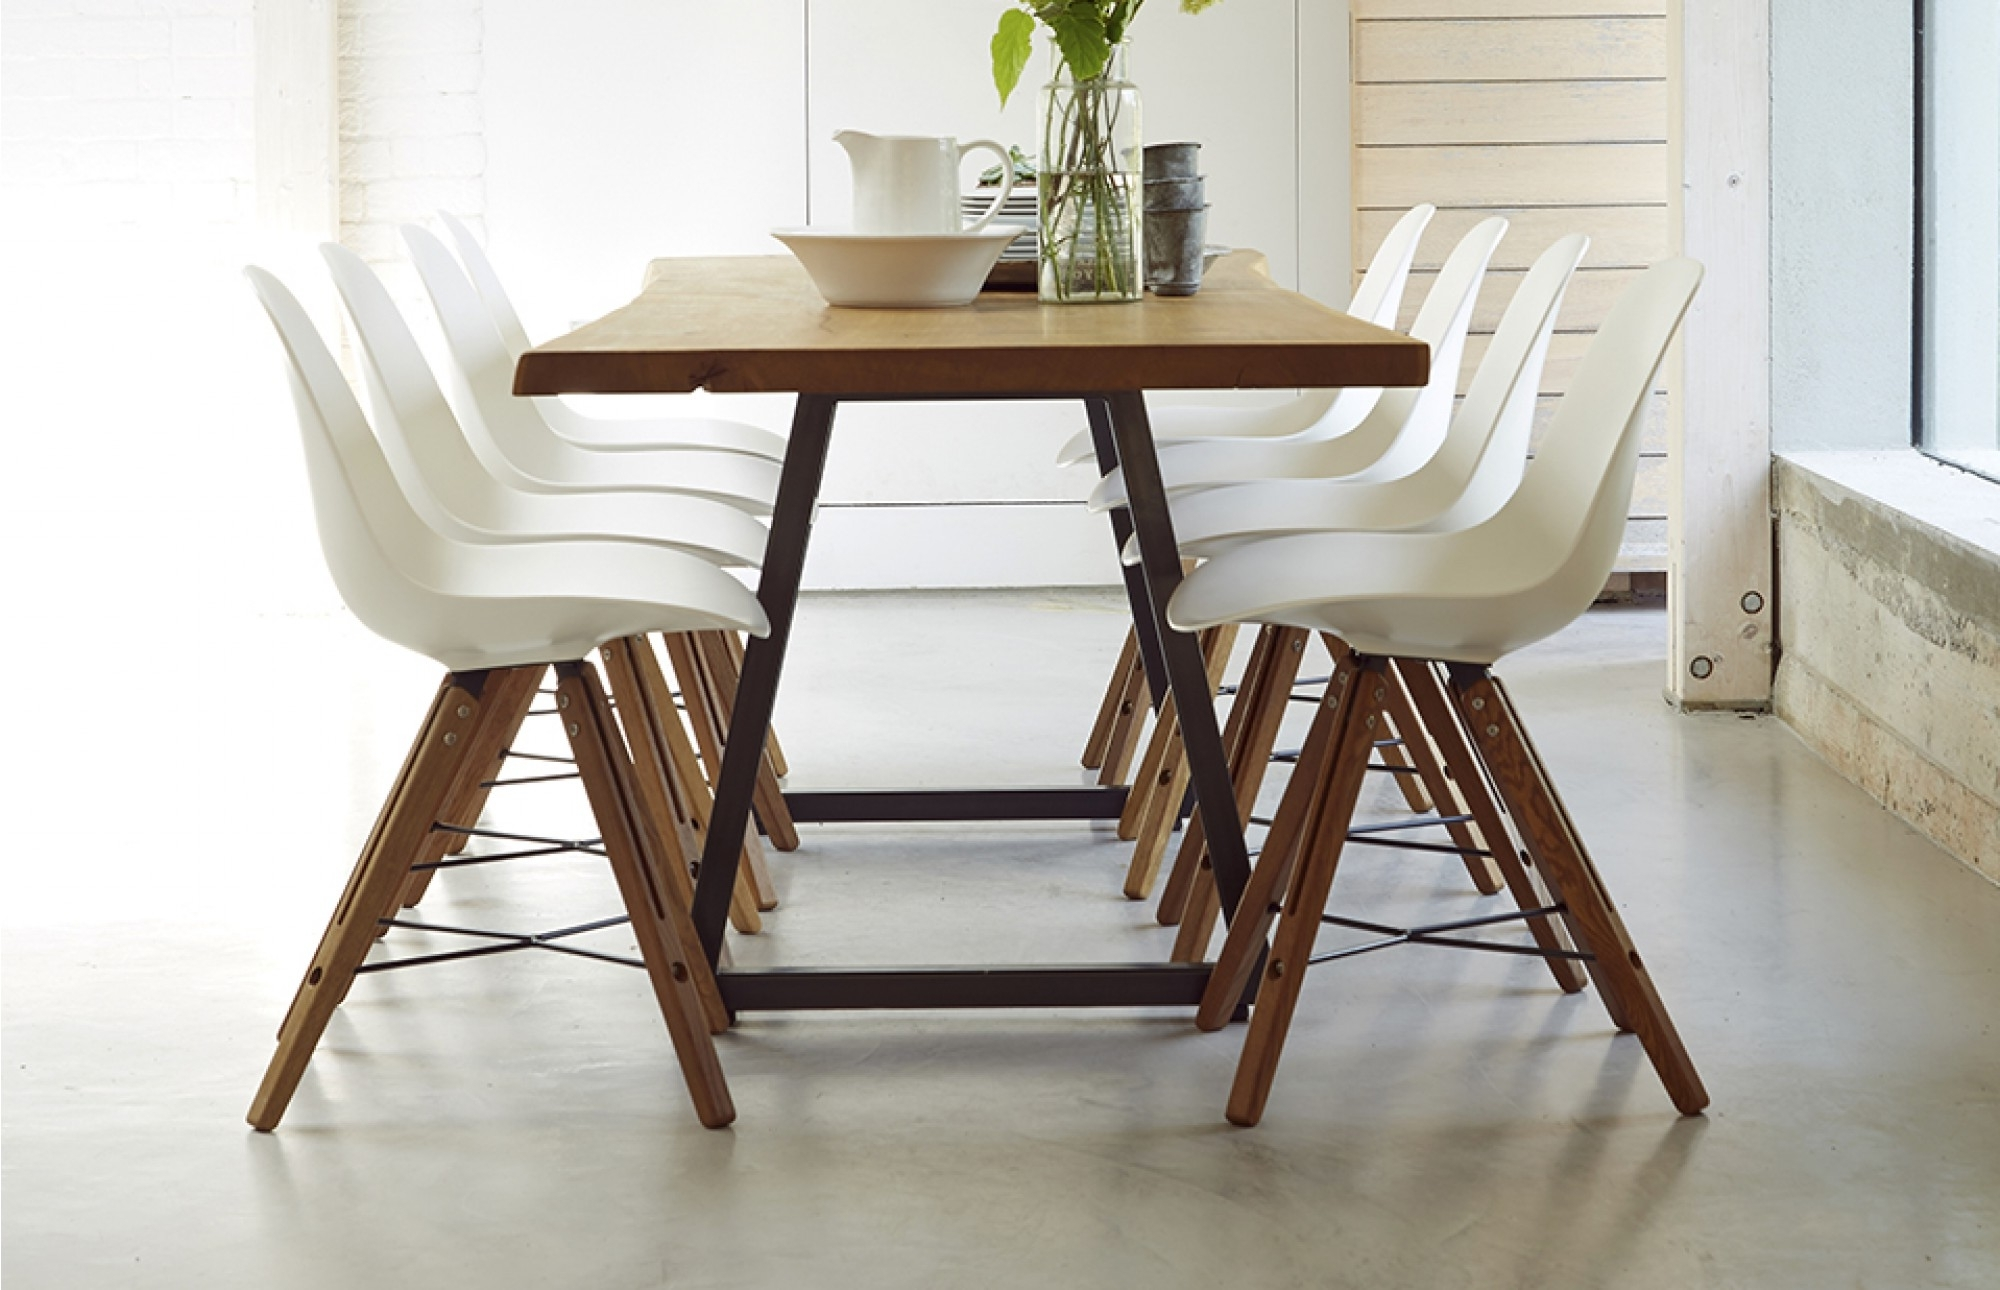 Dining Tables. Marvellous 8 Seater Dining Table Set: 8 Seater Dining For Well Known Dining Tables Seats 8 (Gallery 6 of 25)